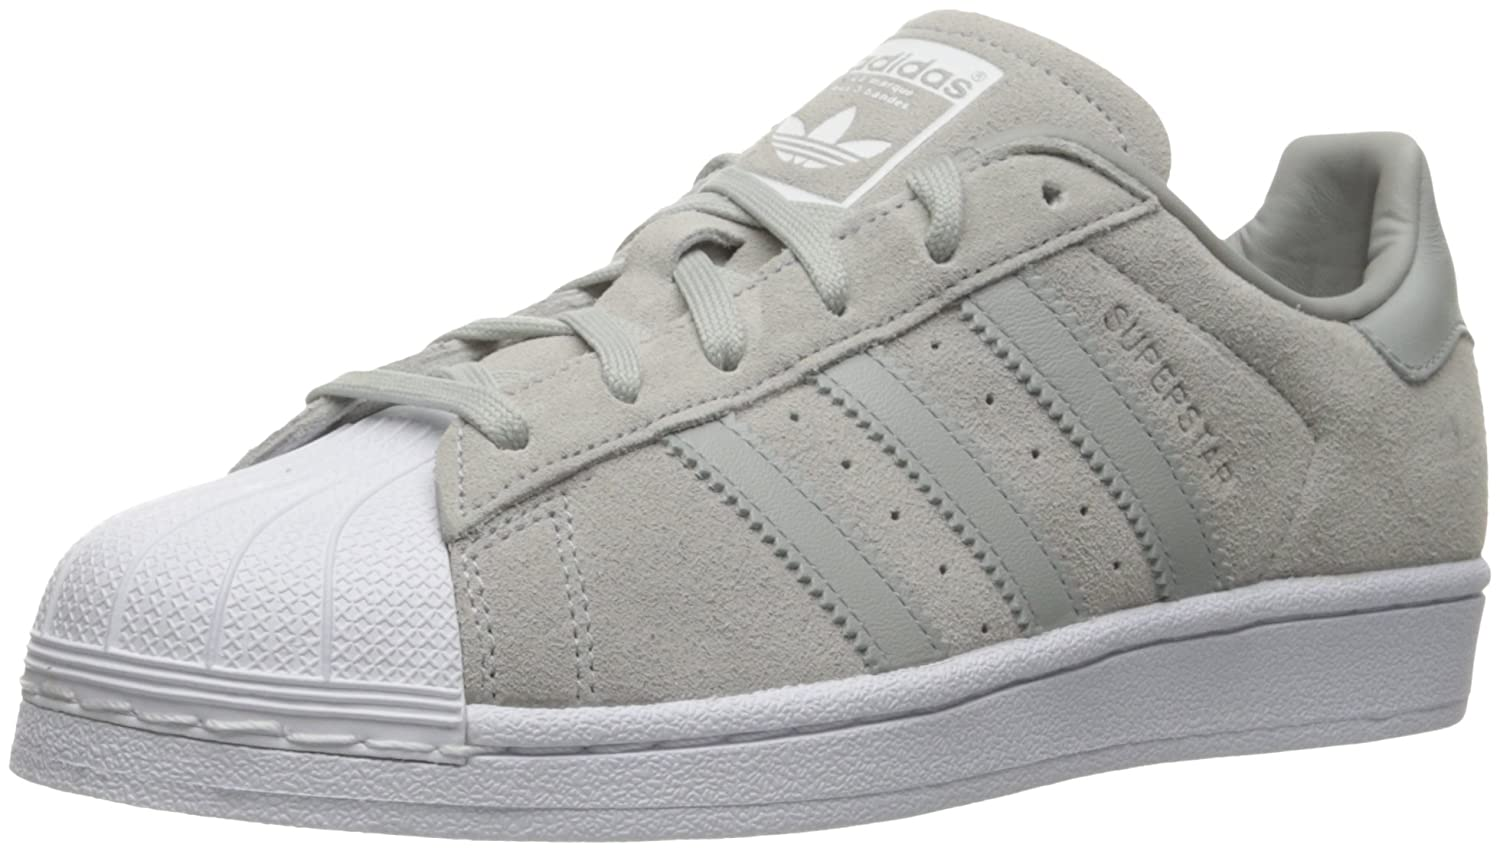 adidas Women's Originals Superstar B01K8P63RU 10 B(M) US|Clear Onix/Clear Onix/White